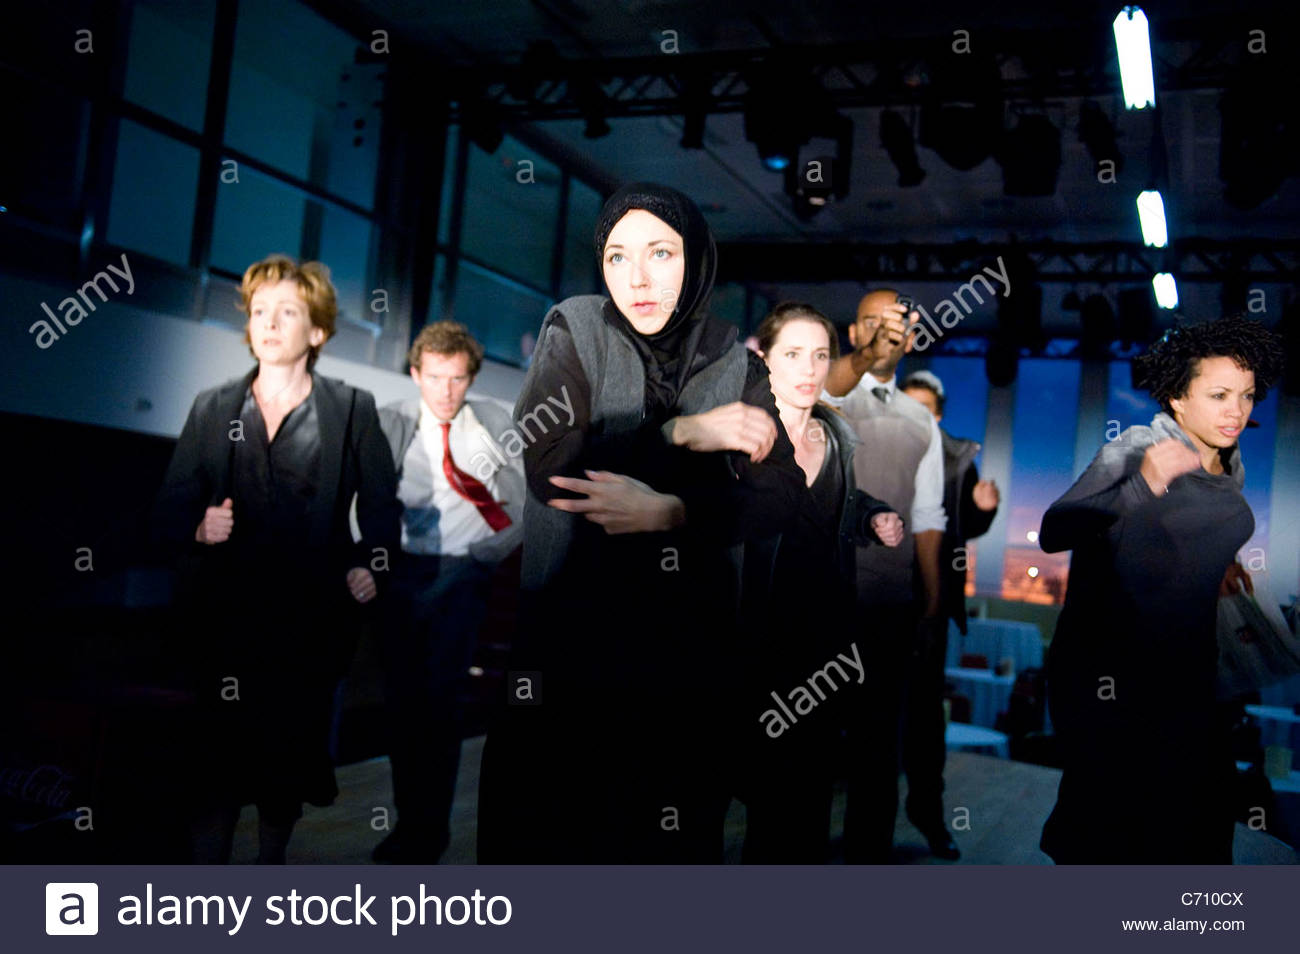 Decade. Based on the events of 9/11 directed by Rupert Goold. Opens at Commodity Quay at St Katherine's Dock - Stock Image